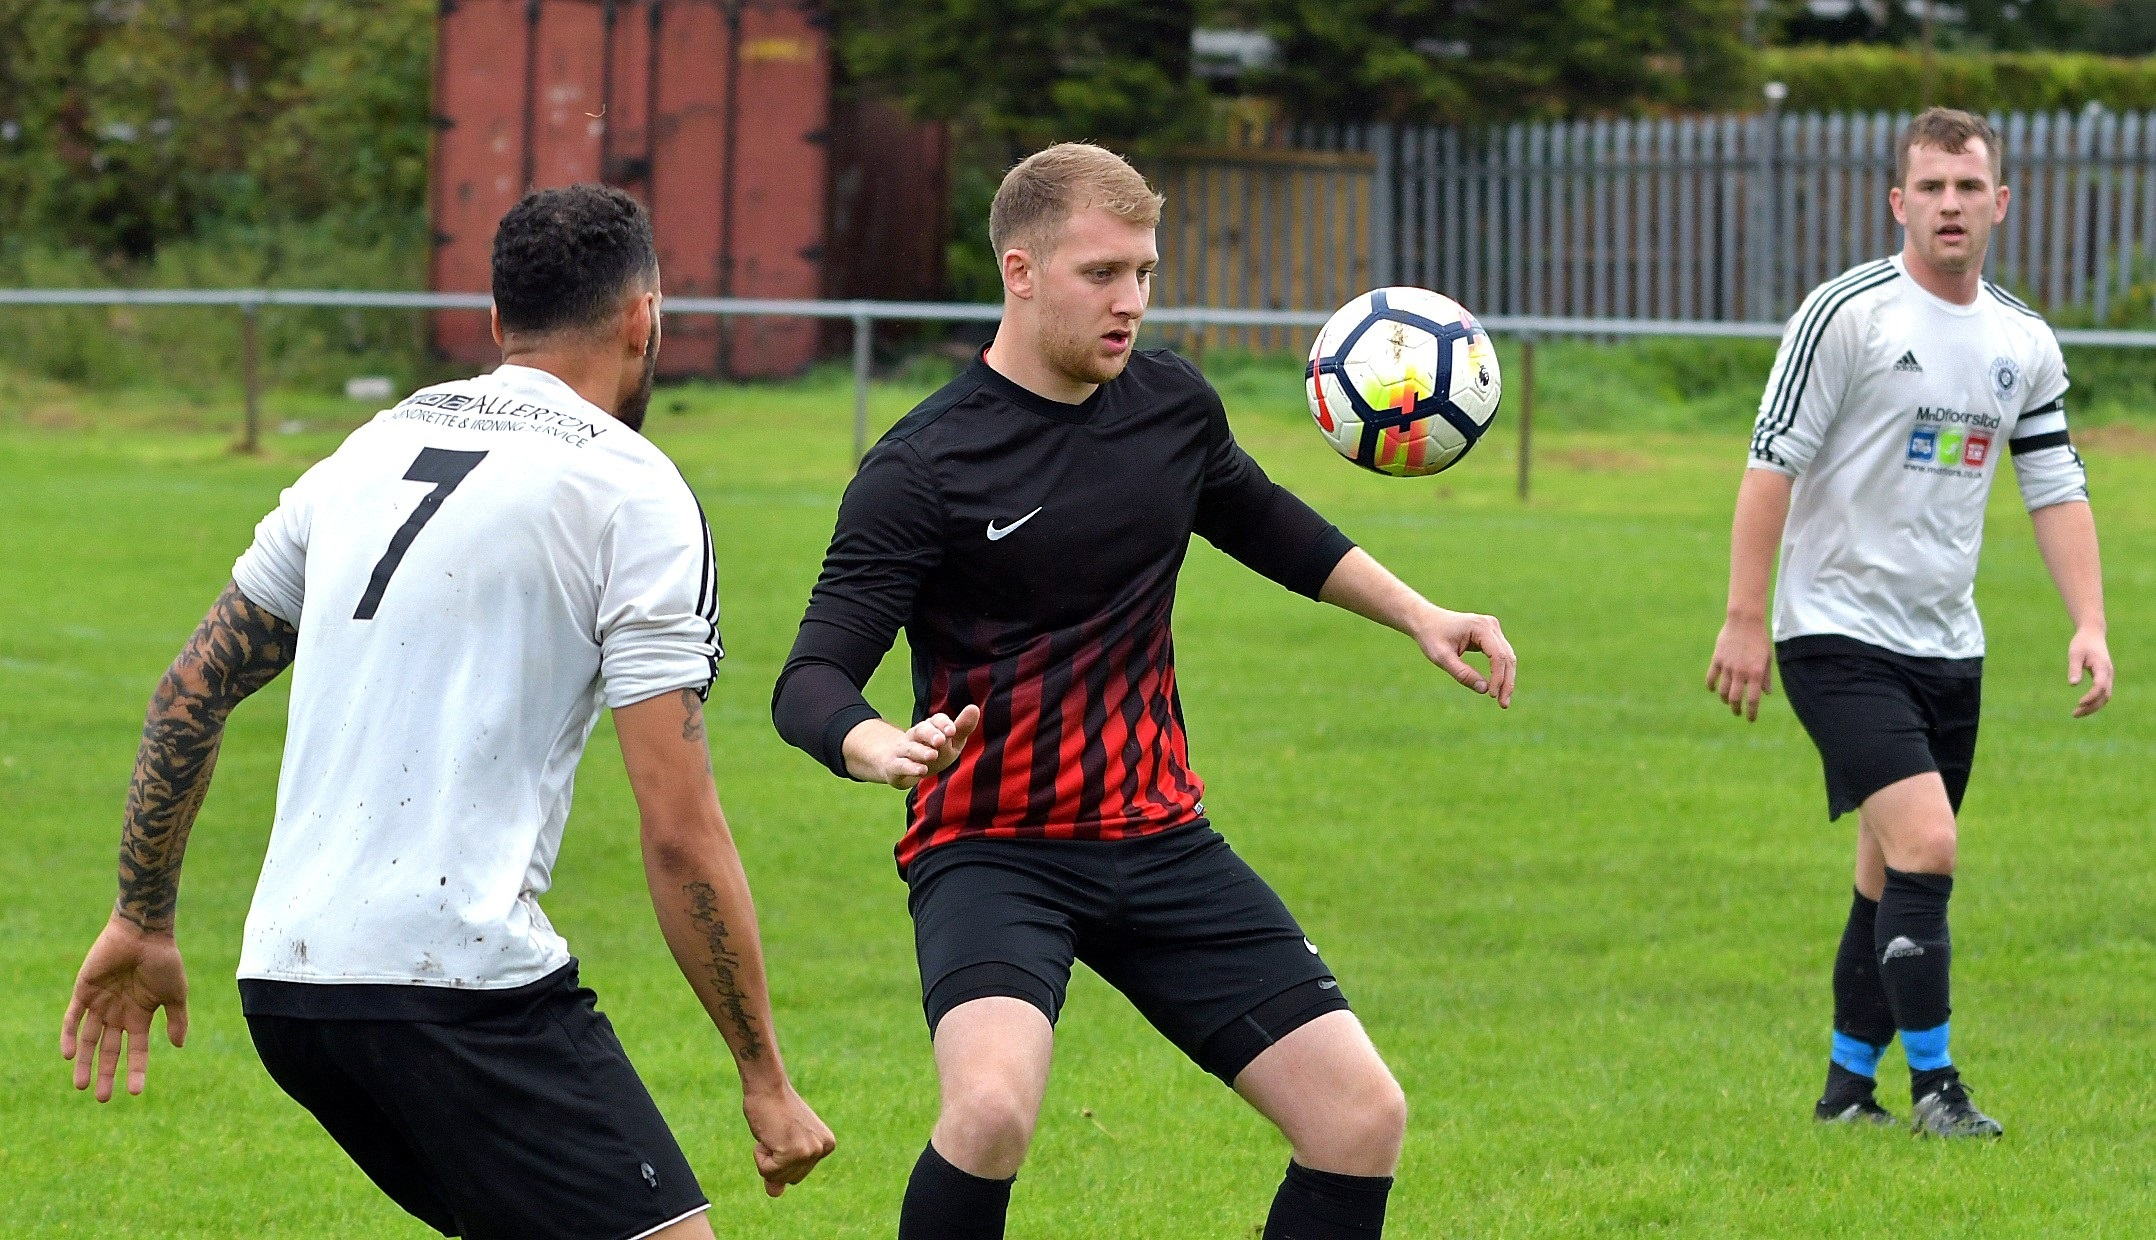 Sam Bradley of Olympic takes on Liam Charles of Thornton United in his side's recent 4-2 win